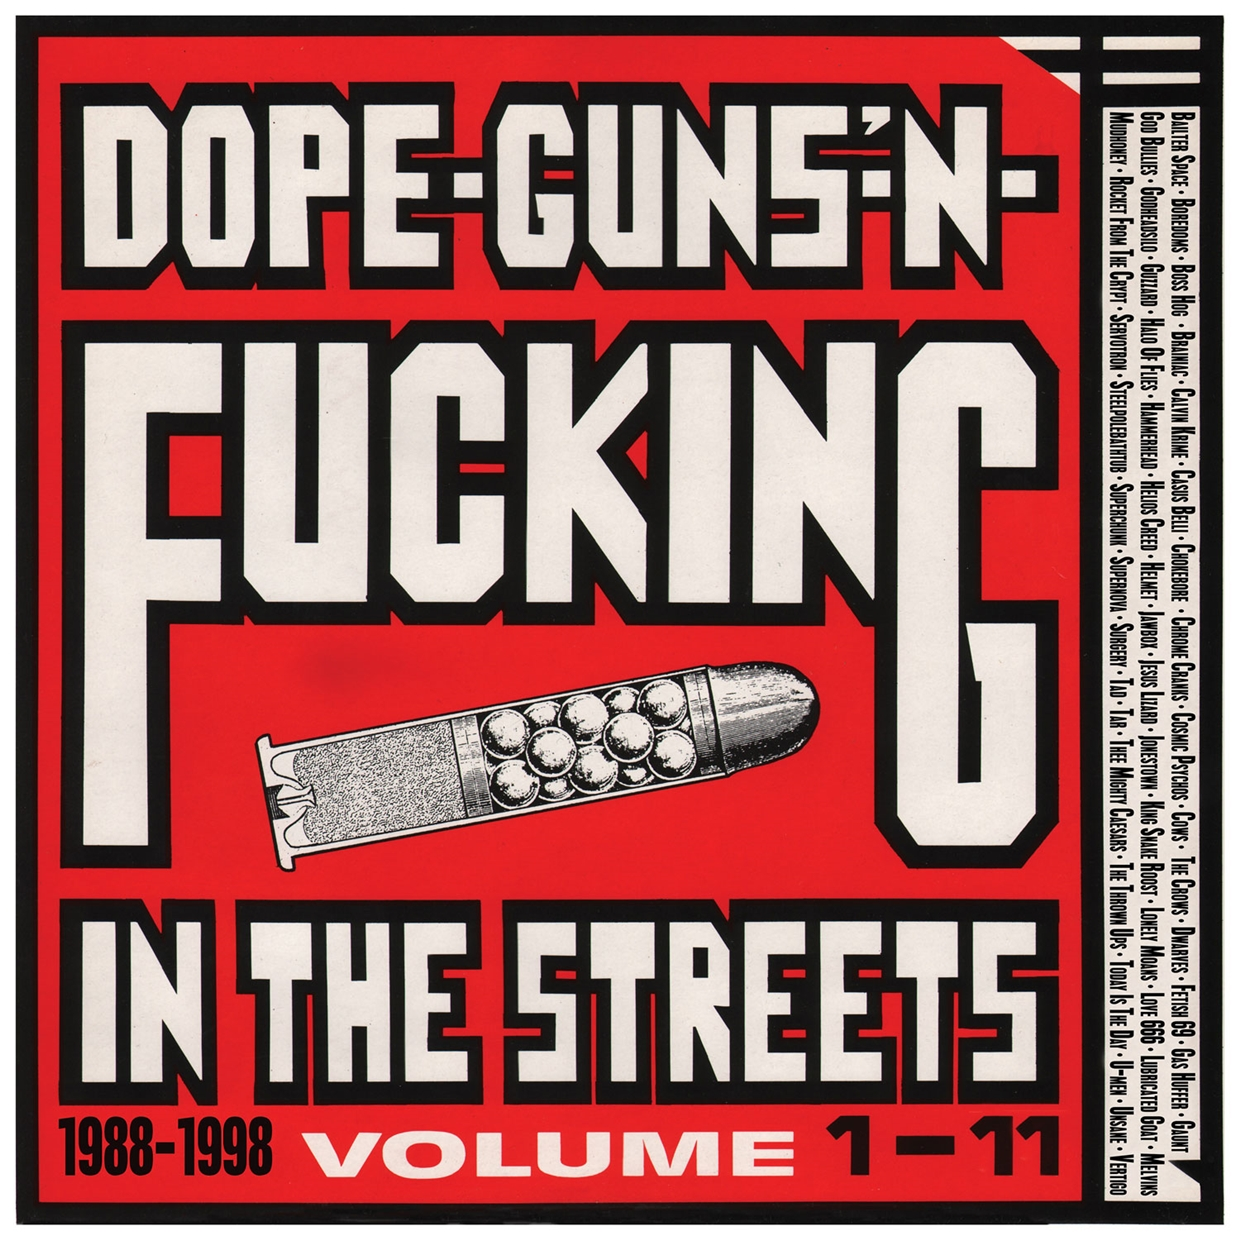 Uk Music Cds Dvds Vinyl Books Accessories And Ciao Wiring Diagram Detroit Burbs Dope Guns Fucking In The Streets 1988 1998 Volume 1 11 2cd